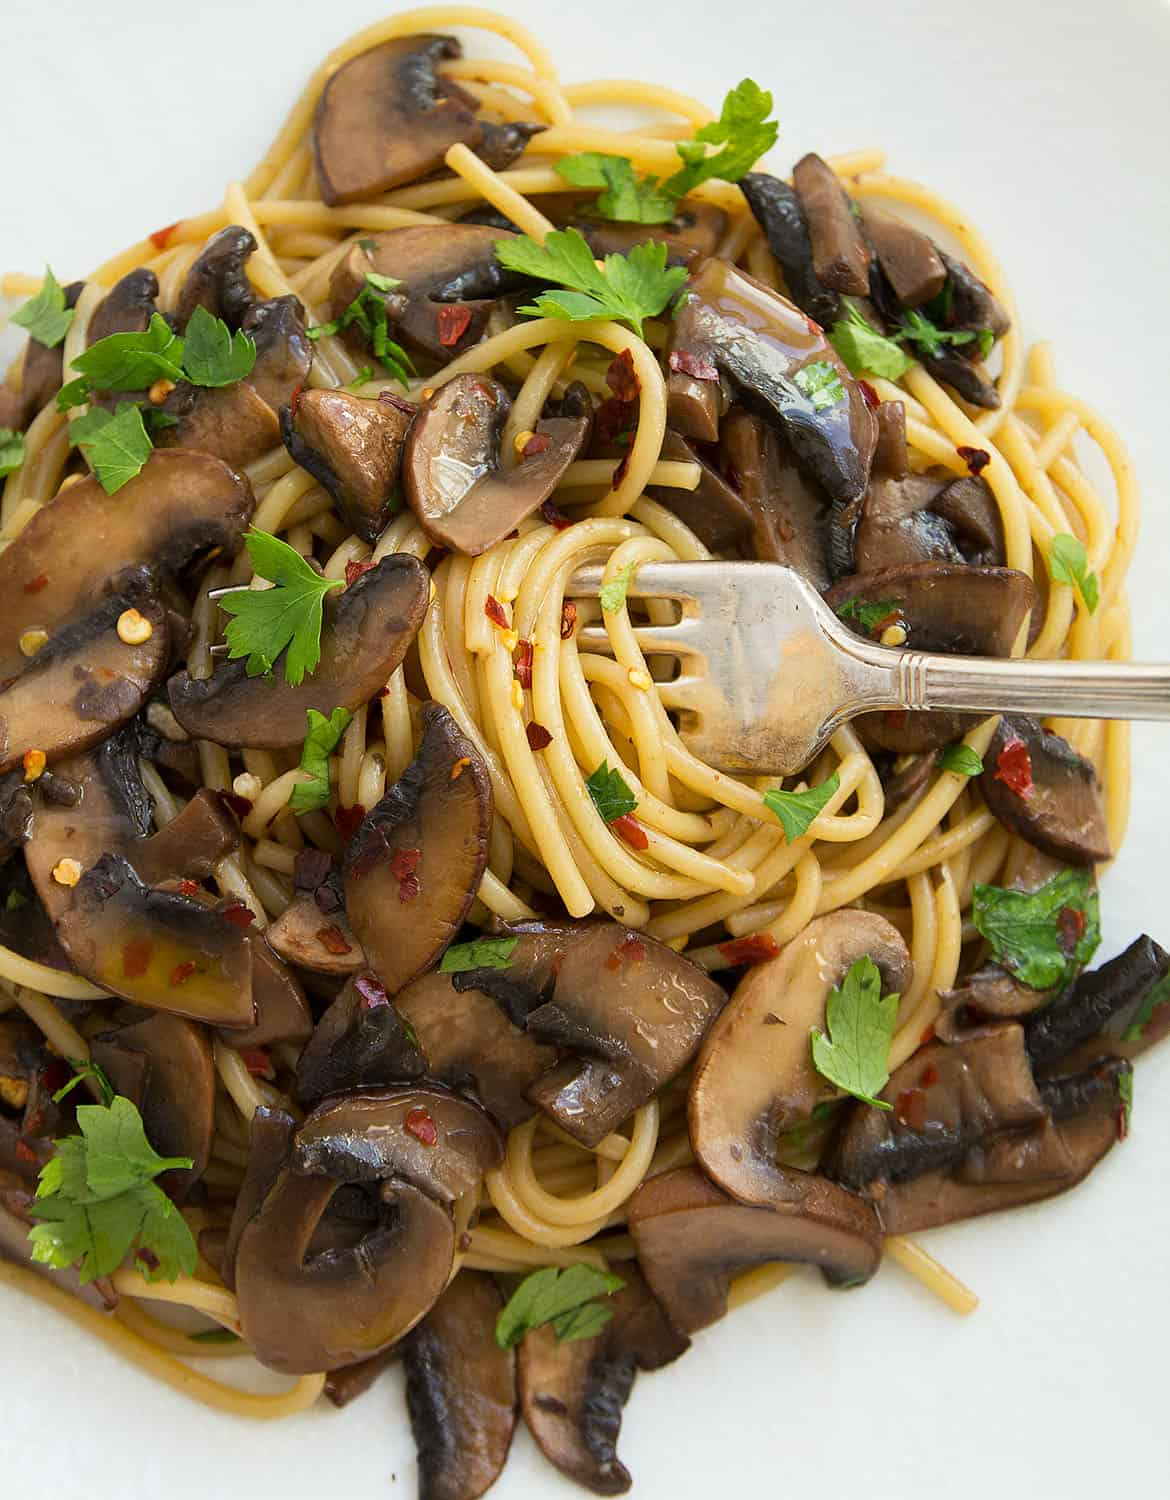 Vegan mushroom spaghetti on a white plate with a fork - The Clever Meal